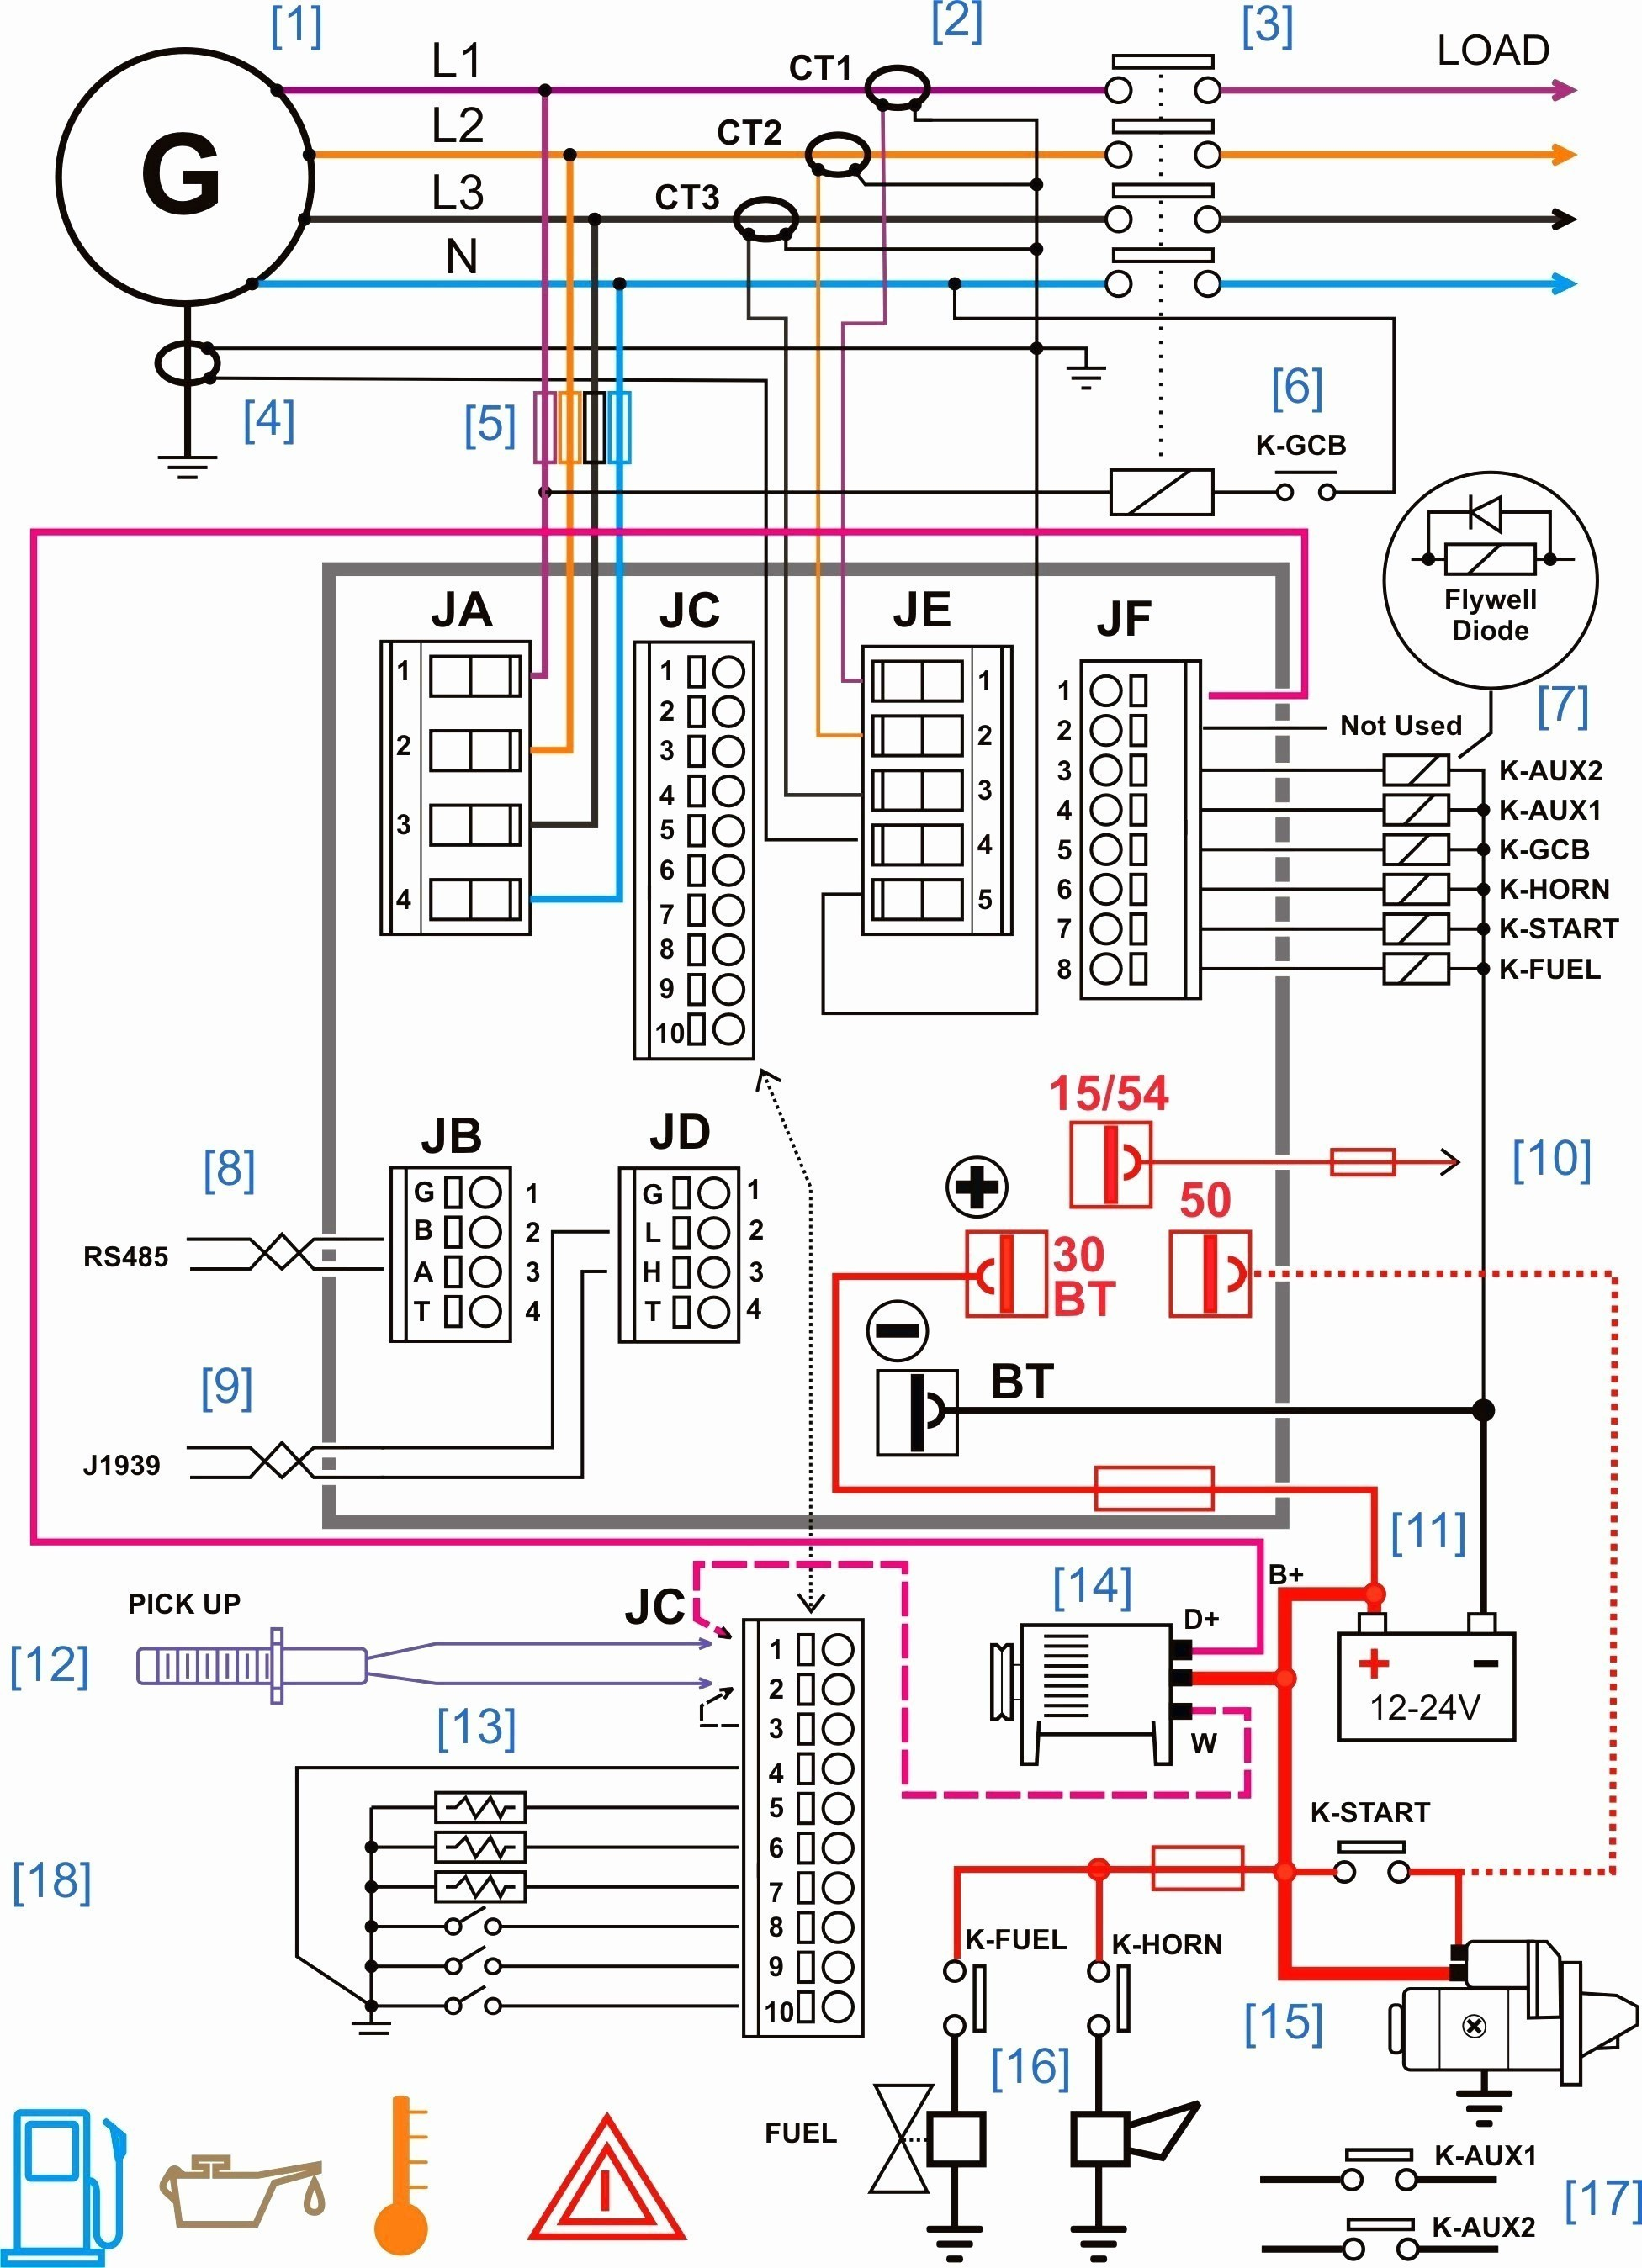 Car Powertrain Diagram Save Audi A4 Cd Player Wiring Diagram Of Car Powertrain Diagram